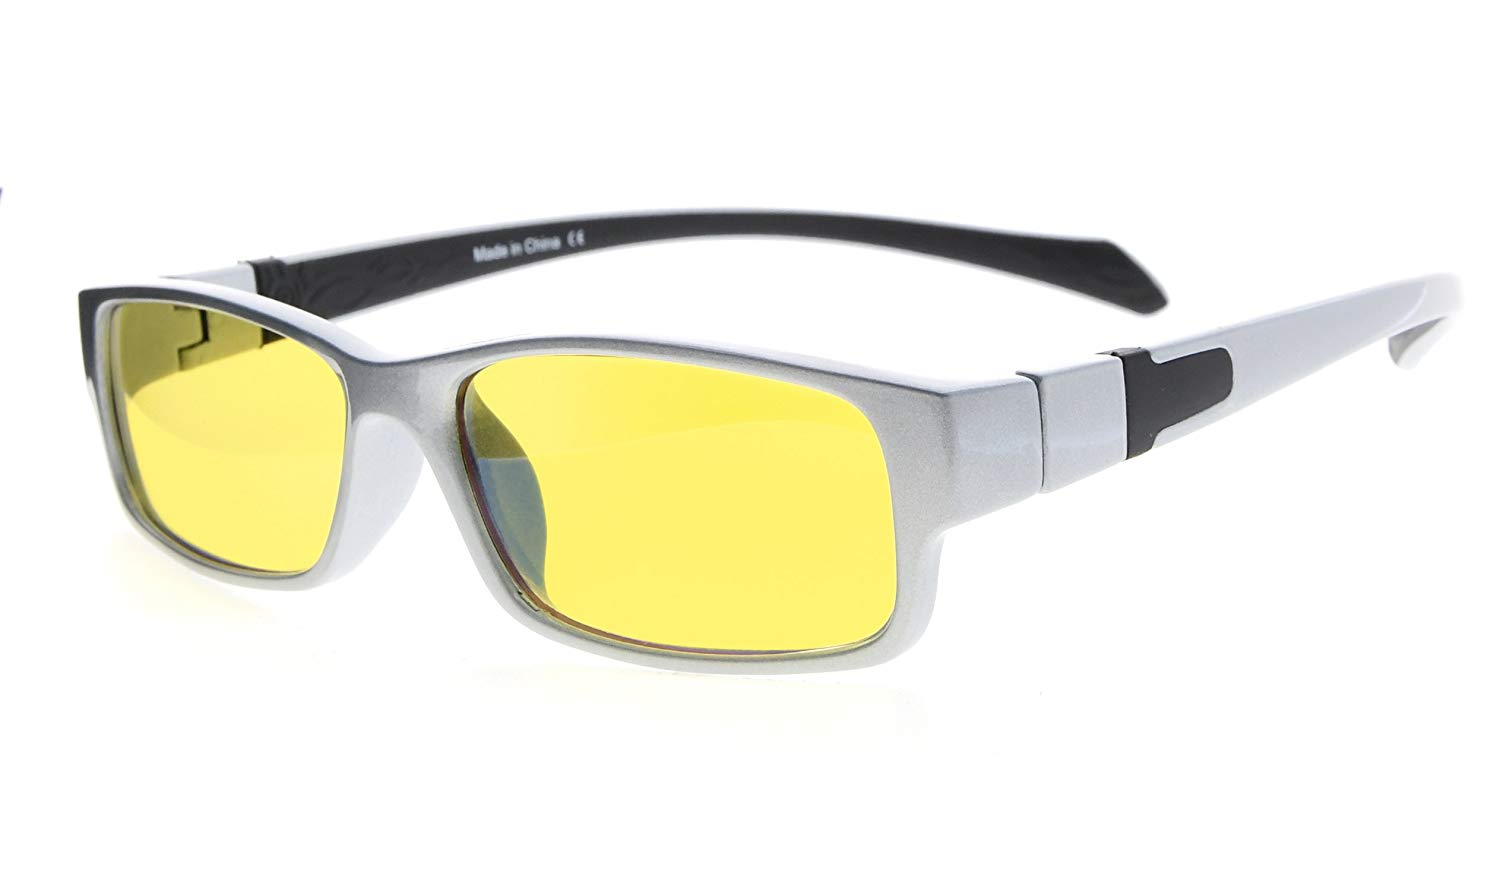 75c954573f Eyekepper Computer Reading Glasses Anti Blue Light More than 94% TR90 Frame  Yellow Tinted Lens Silver-Black +2.50